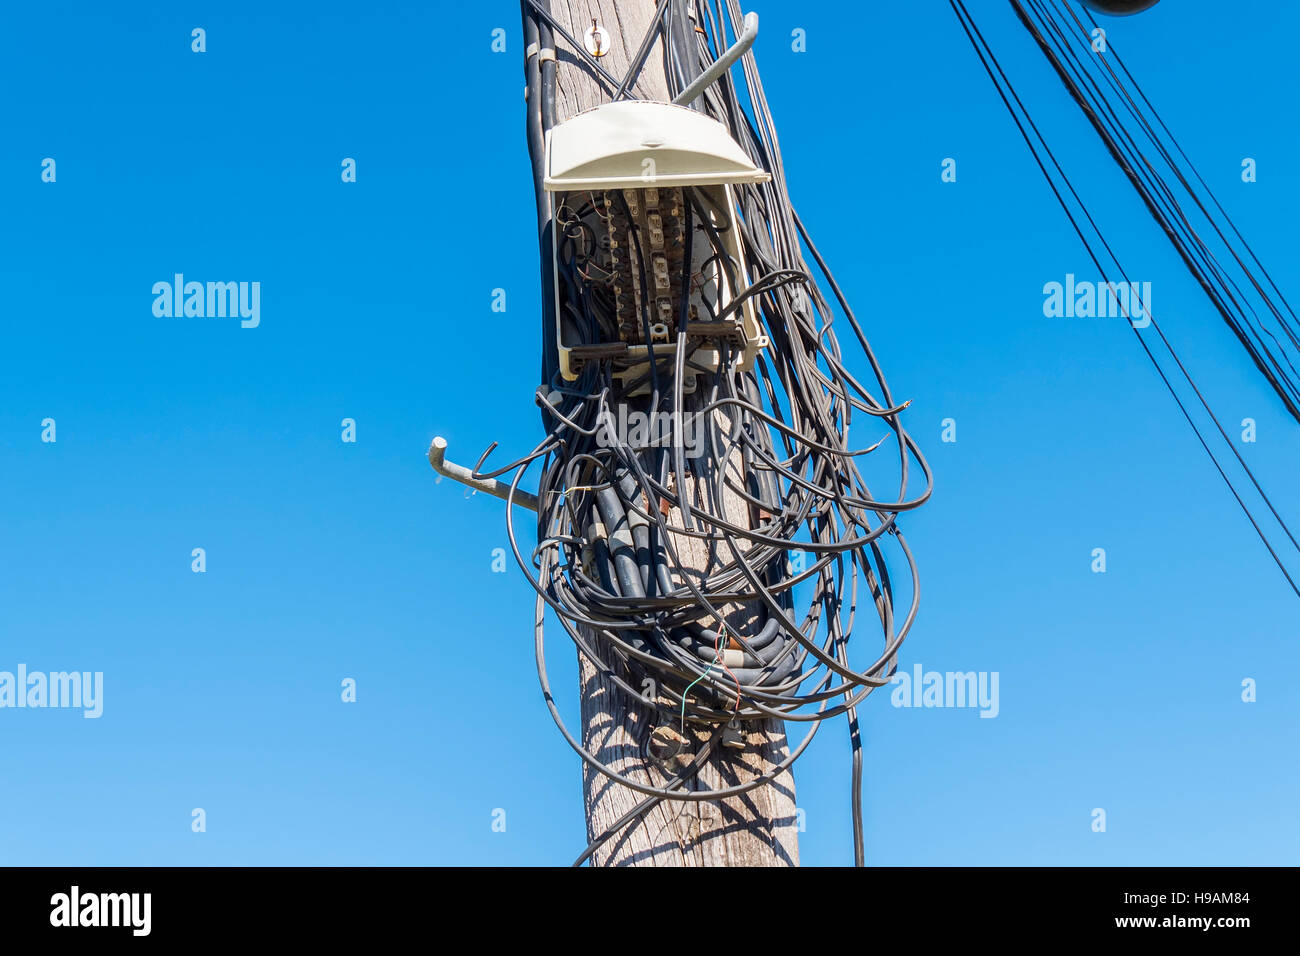 Telecommunications wiring in poor condition - Stock Image